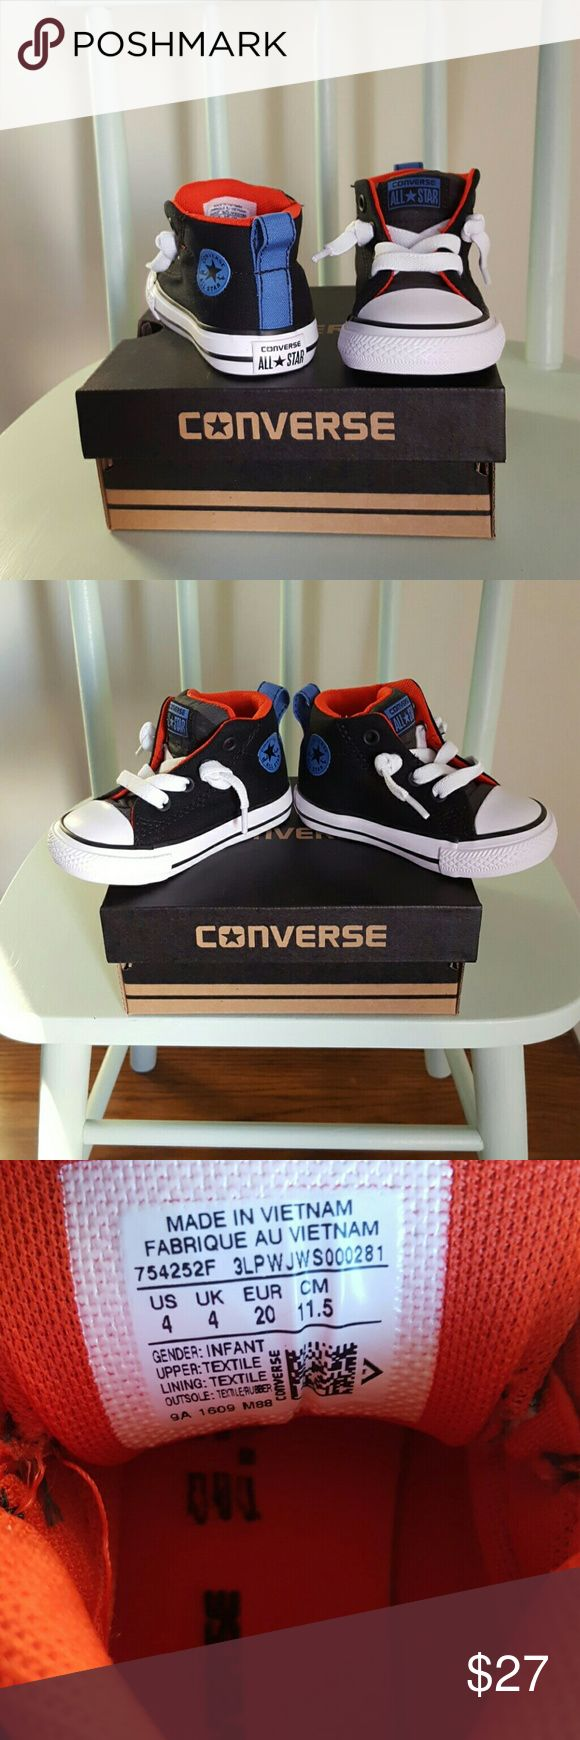 Chuck Taylor All Star Converse The Converse Chuck Taylor All Star Street slip-on sneaker is perfect for adding some street chic style to his attire. The easy on and off design makes these kids sneakers a must have!  Black canvas upper Dual elastic panels with functional lace-up Heel pull on tab Star printed tongue Rubber cap toe Mesh lining  Comes with the box Converse Shoes Sneakers